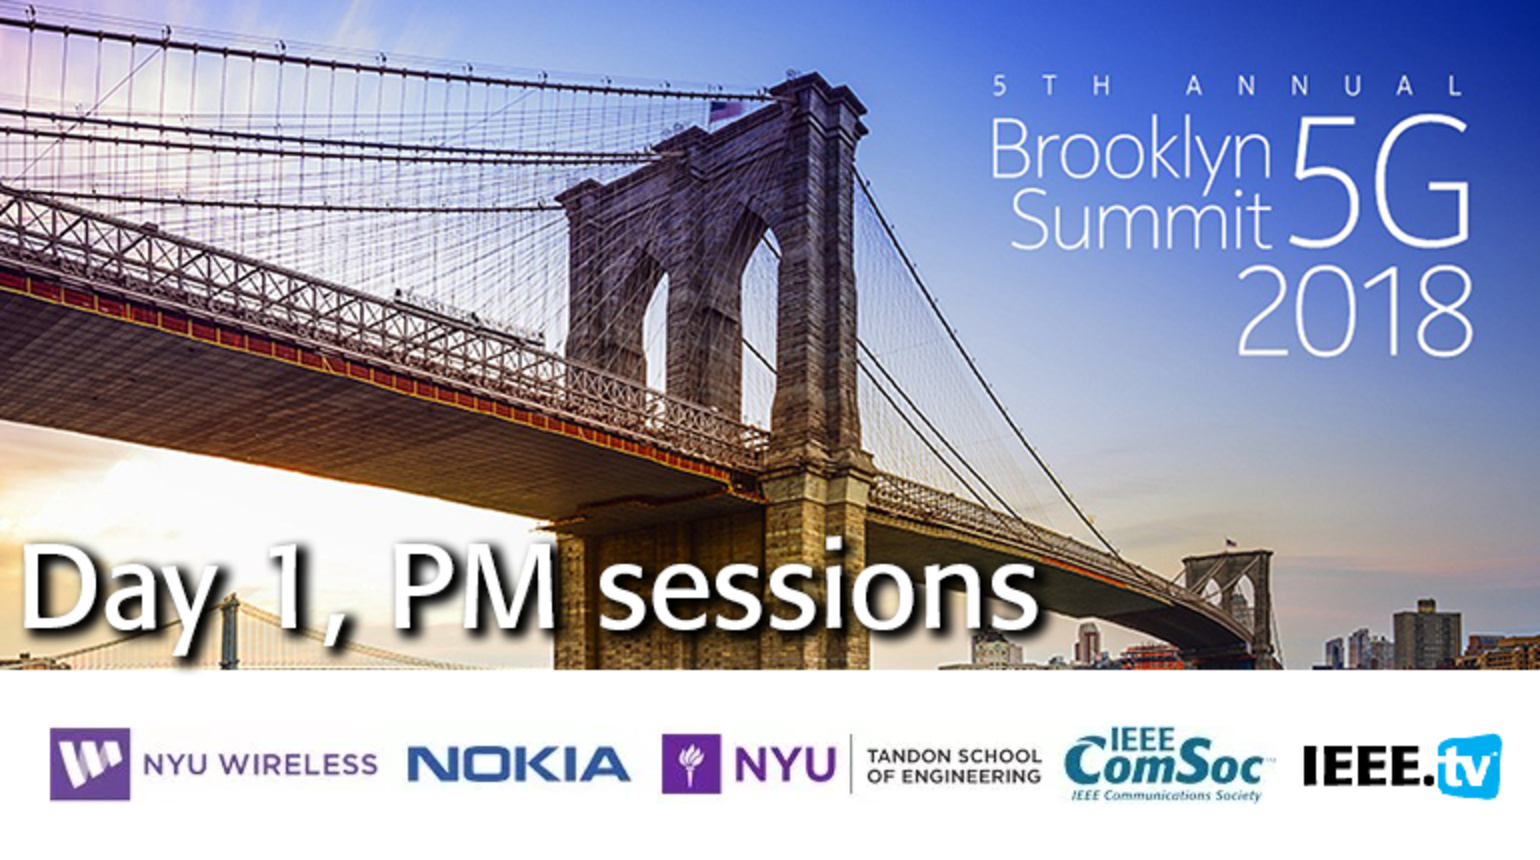 Day 1, PM Sessions Part 2 - Brooklyn 5G Summit 2018